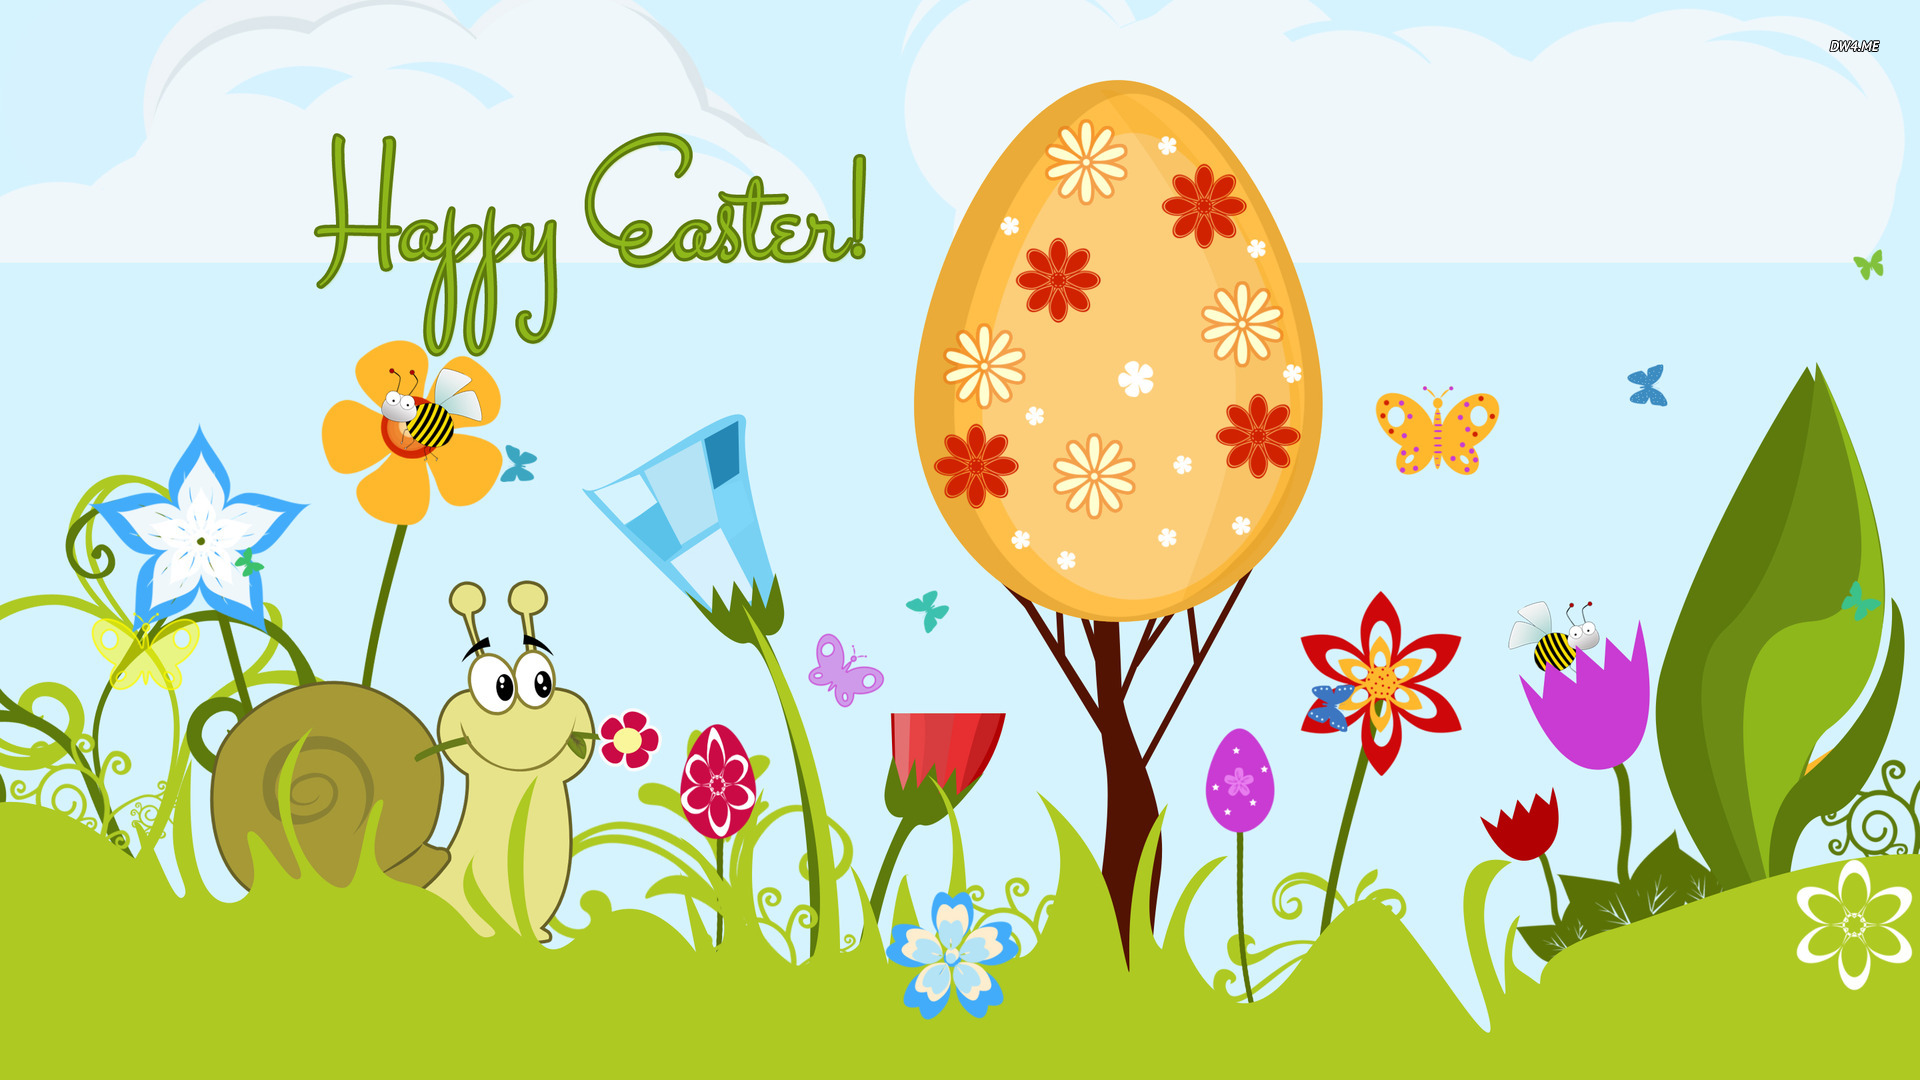 Happy Easter Backgrounds wallpaper   816707 1920x1080